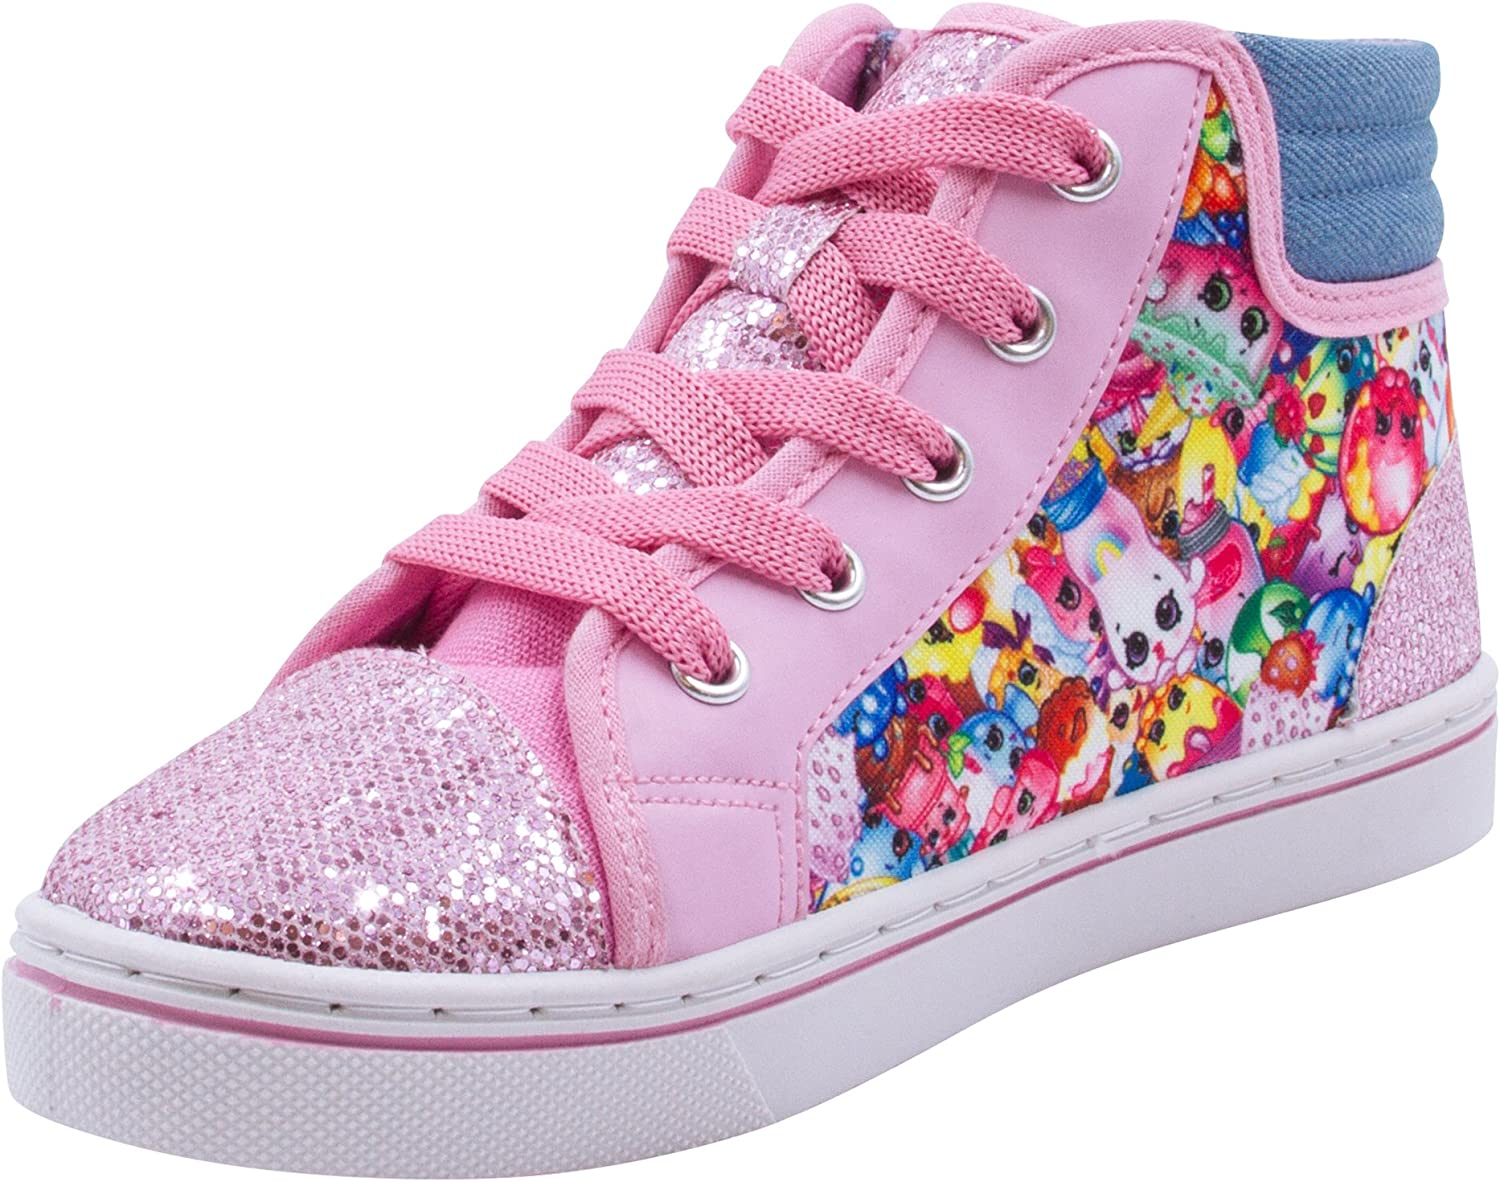 3 1 NWT Shopkins Limited PINK Multi-color Slip On CANVAS Shoes GIRLS size 13